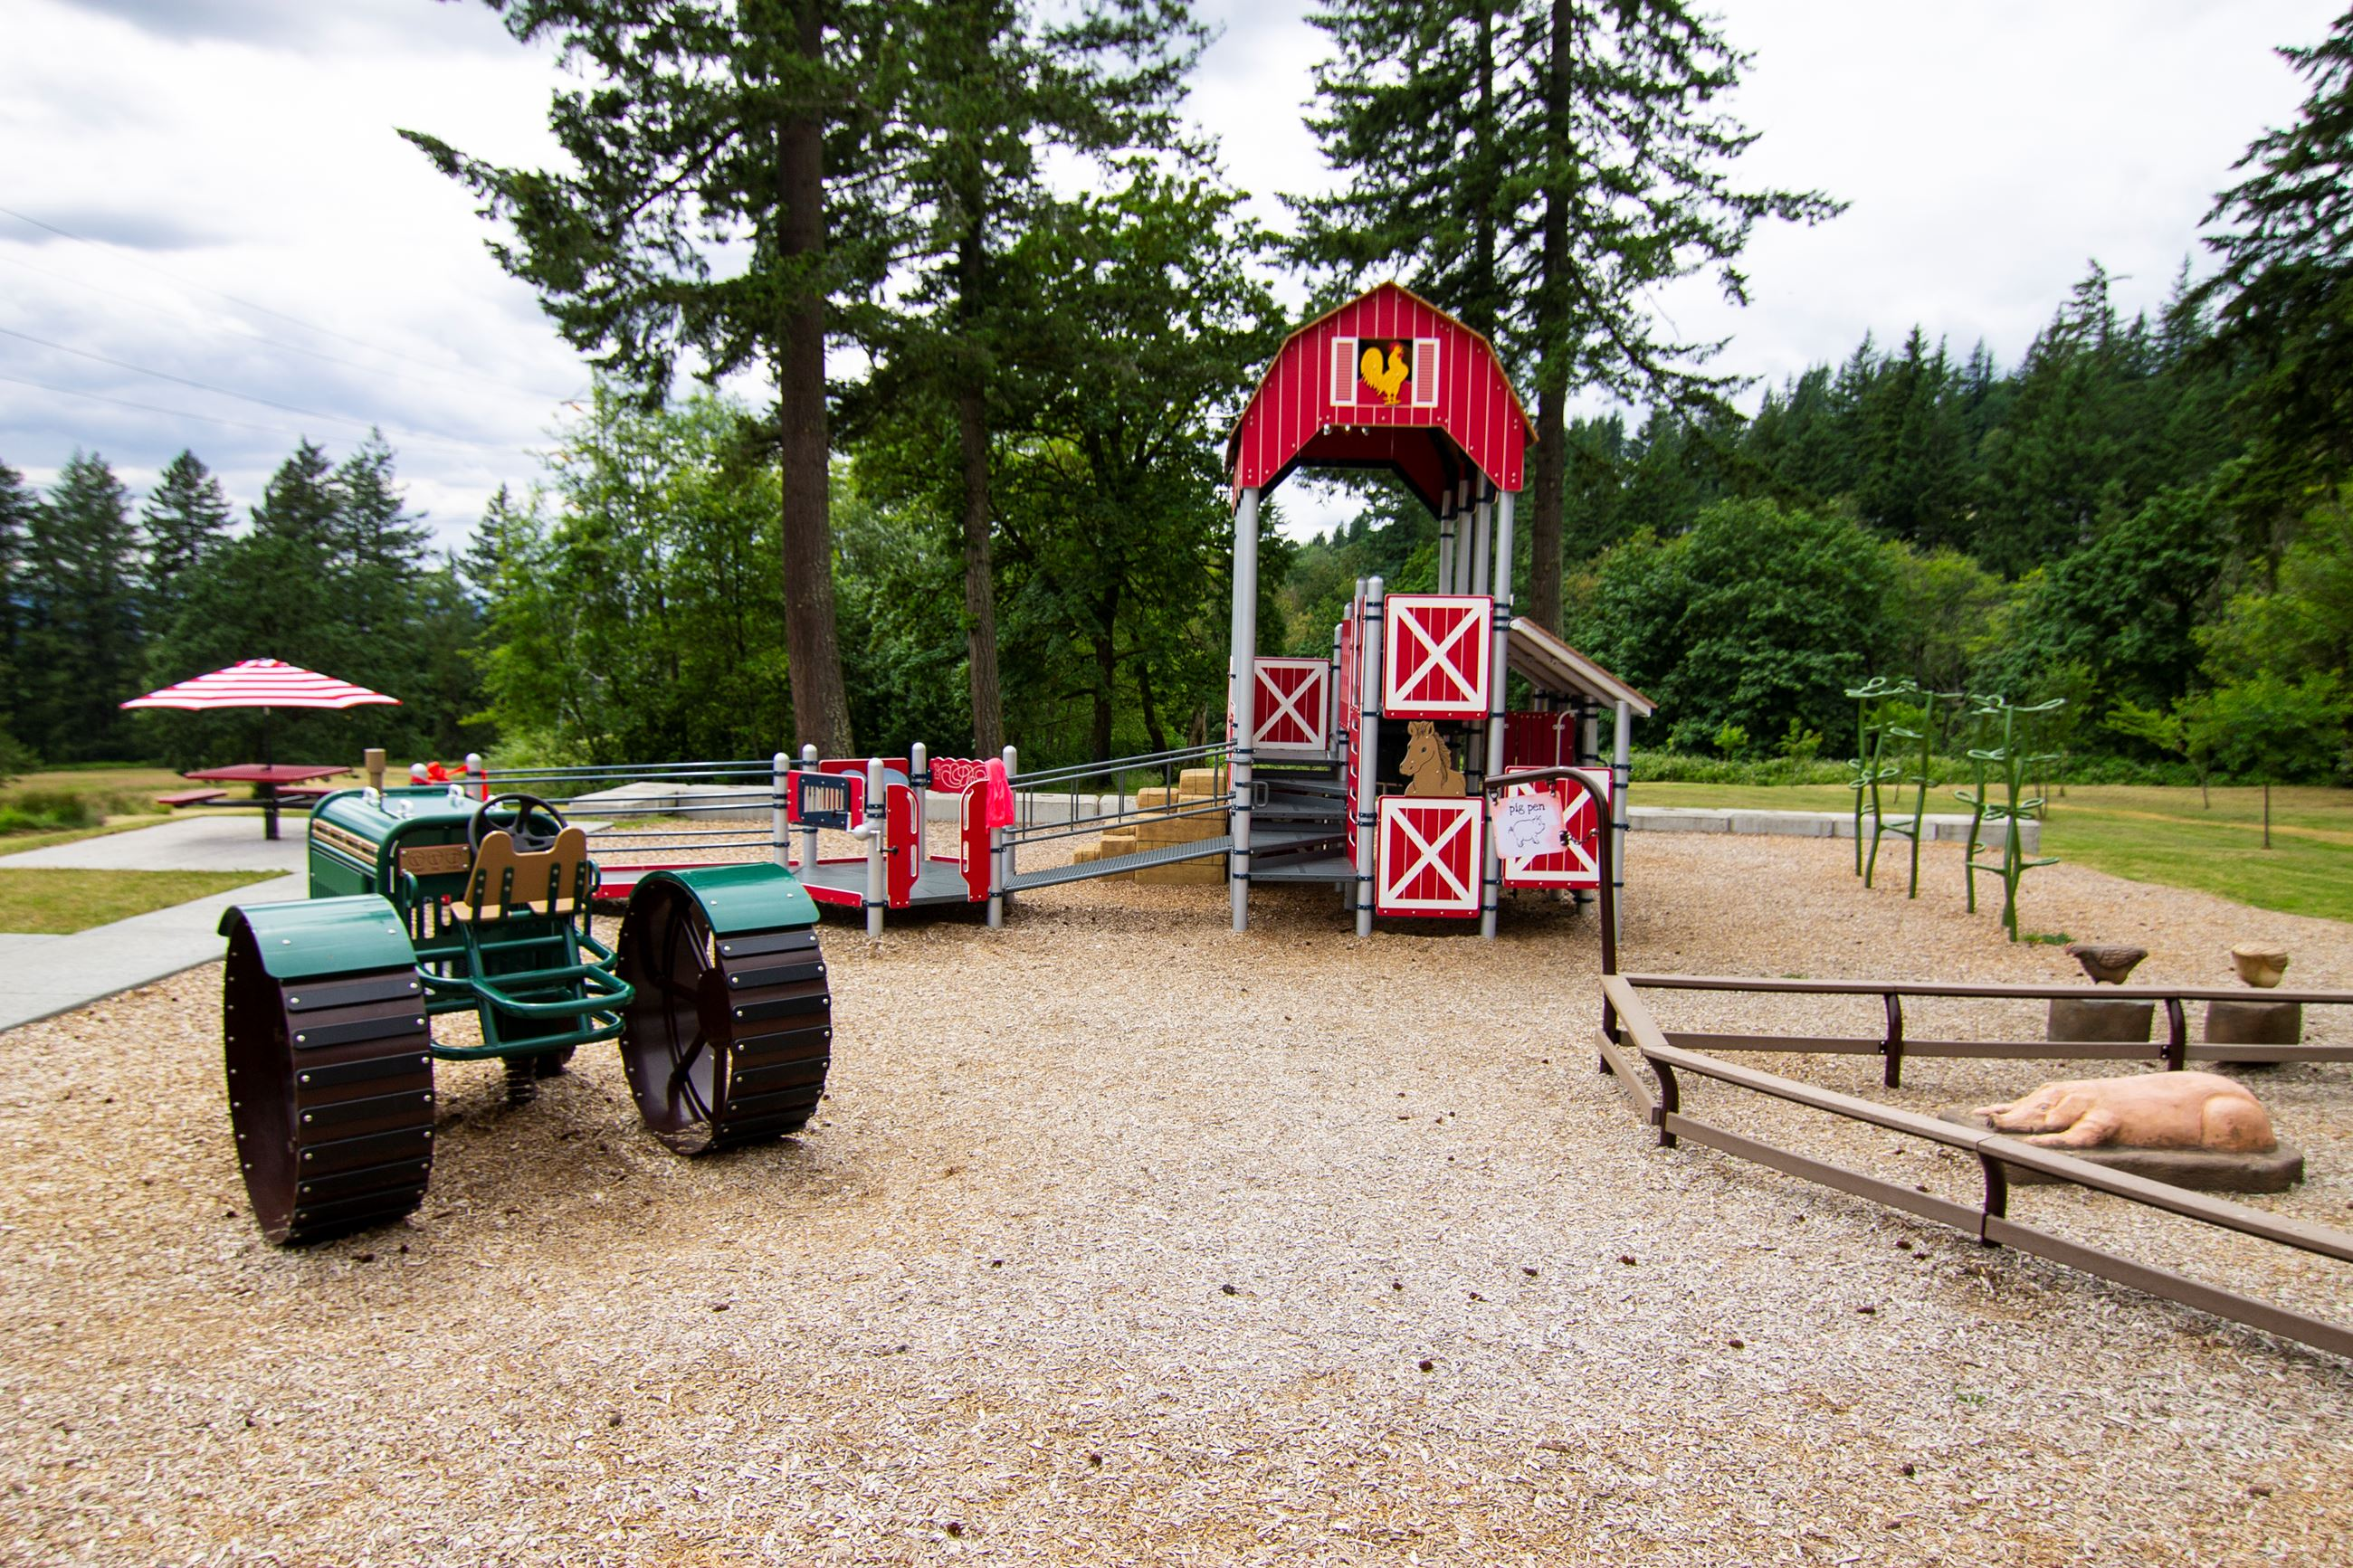 Park with farm playground structures (tractor, barn, pig sty)